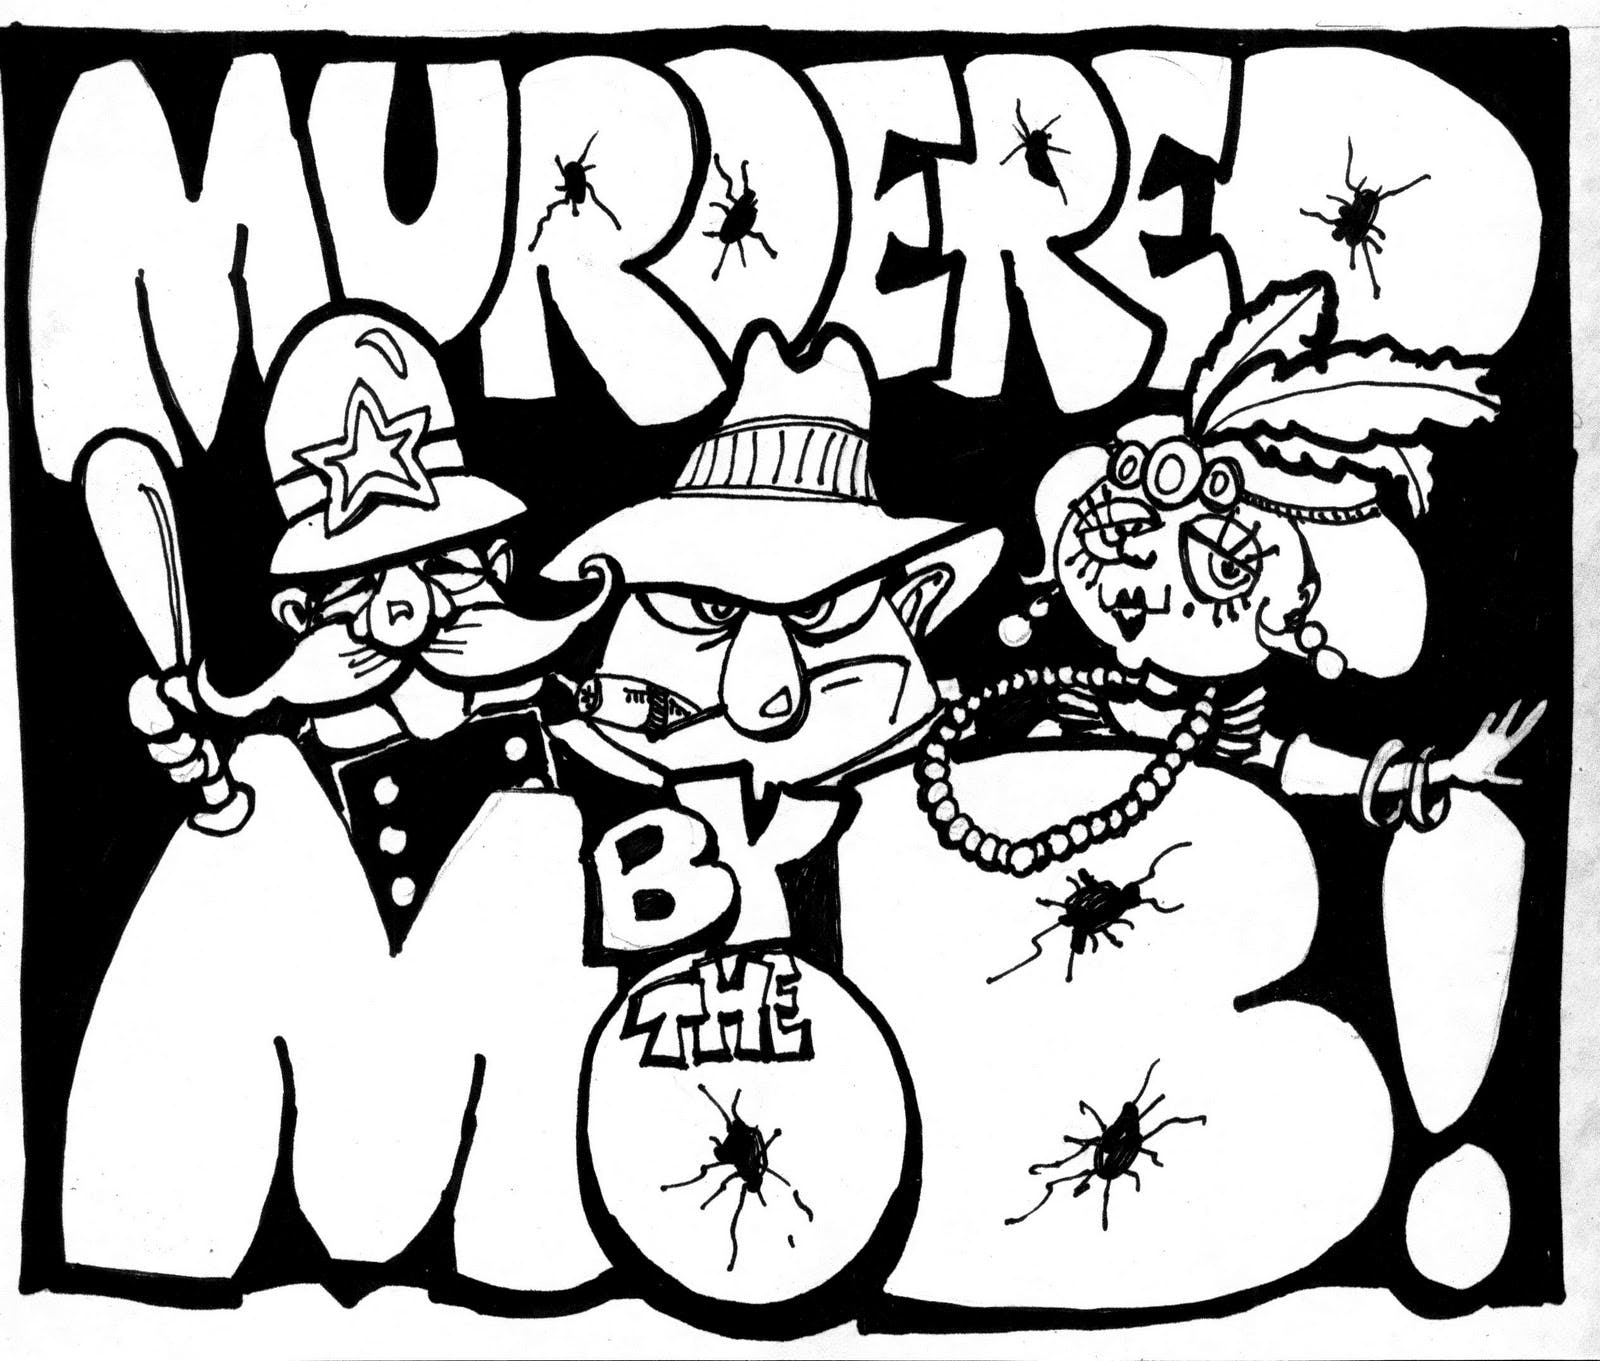 Murdered by the mob 2